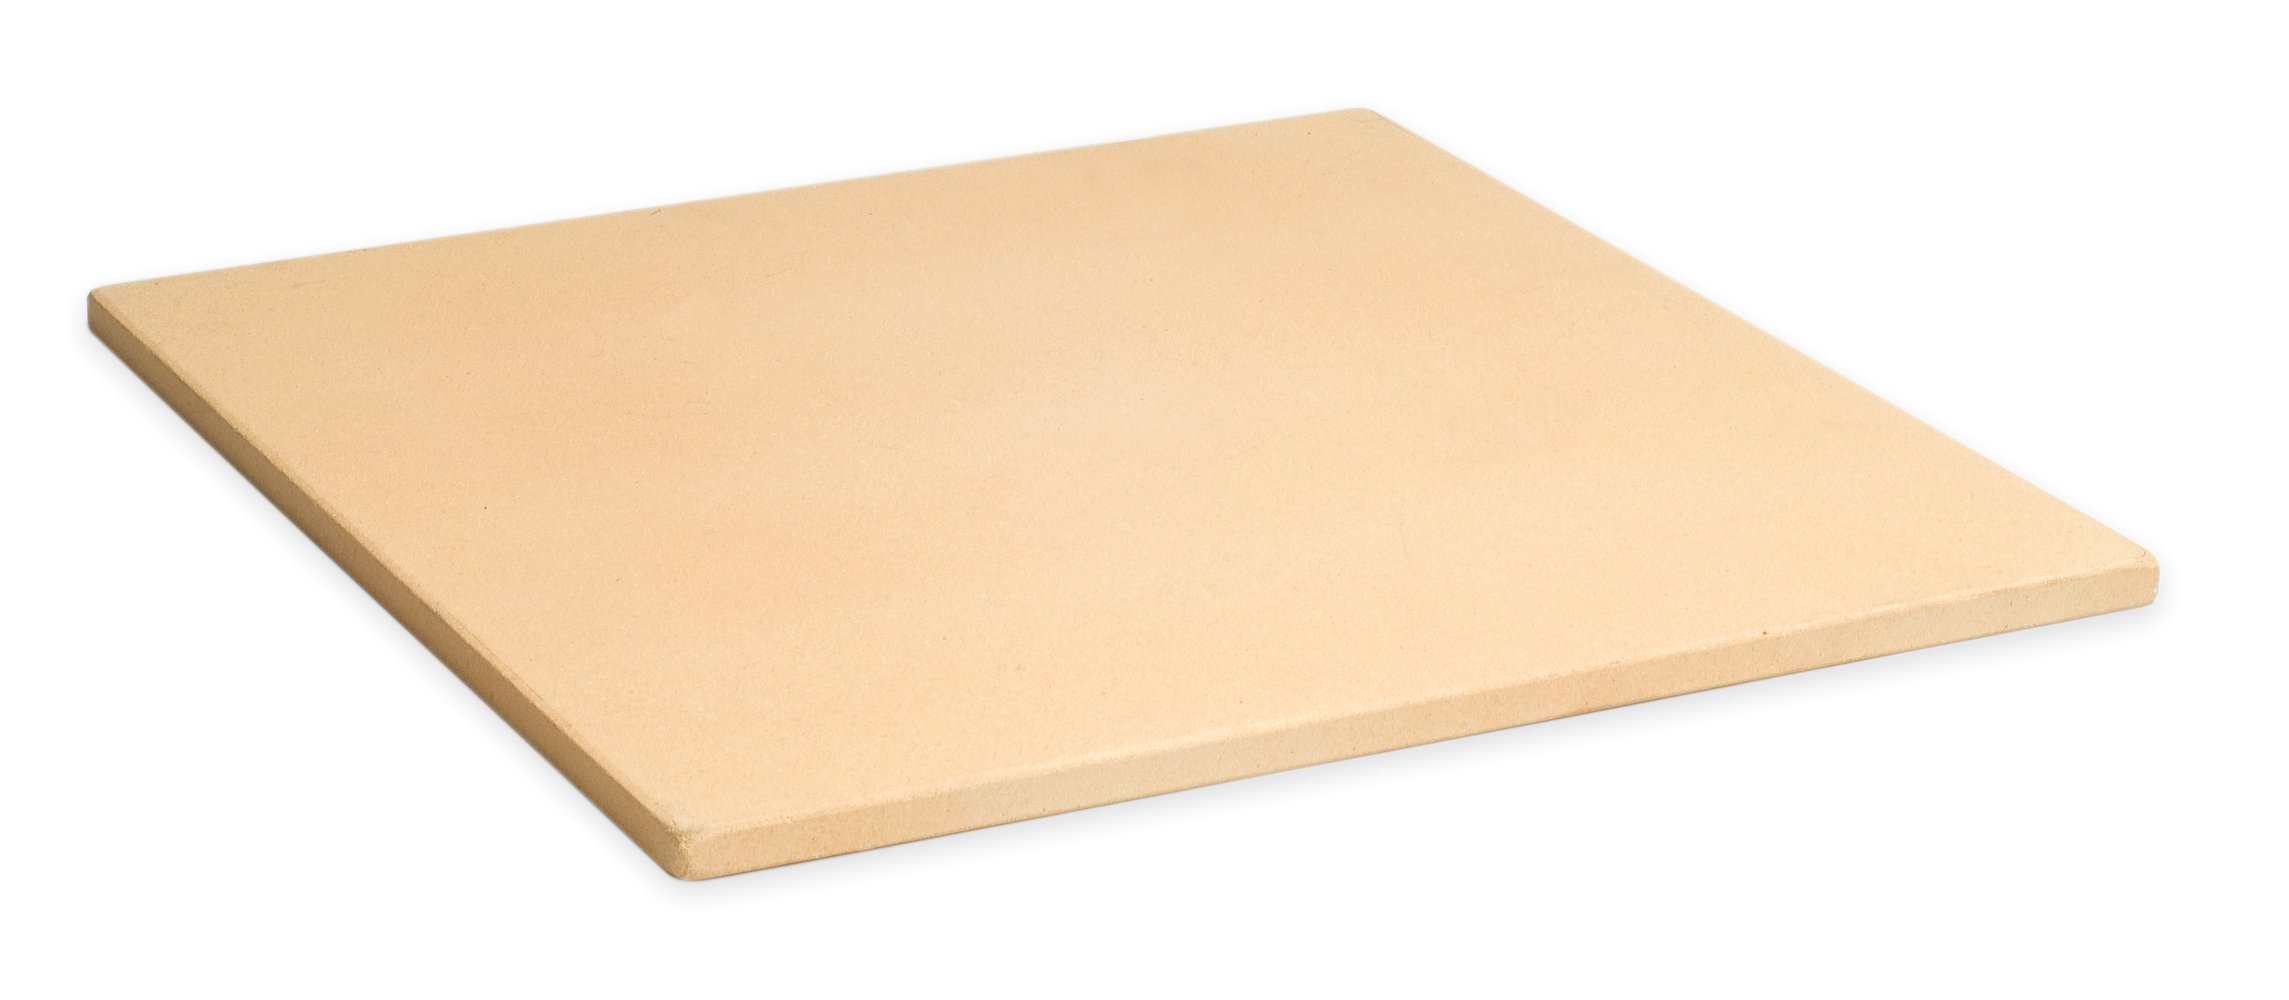 Pizzacraft 15'' Square ThermaBond Baking/Pizza Stone - For Oven or Grill - PC9897